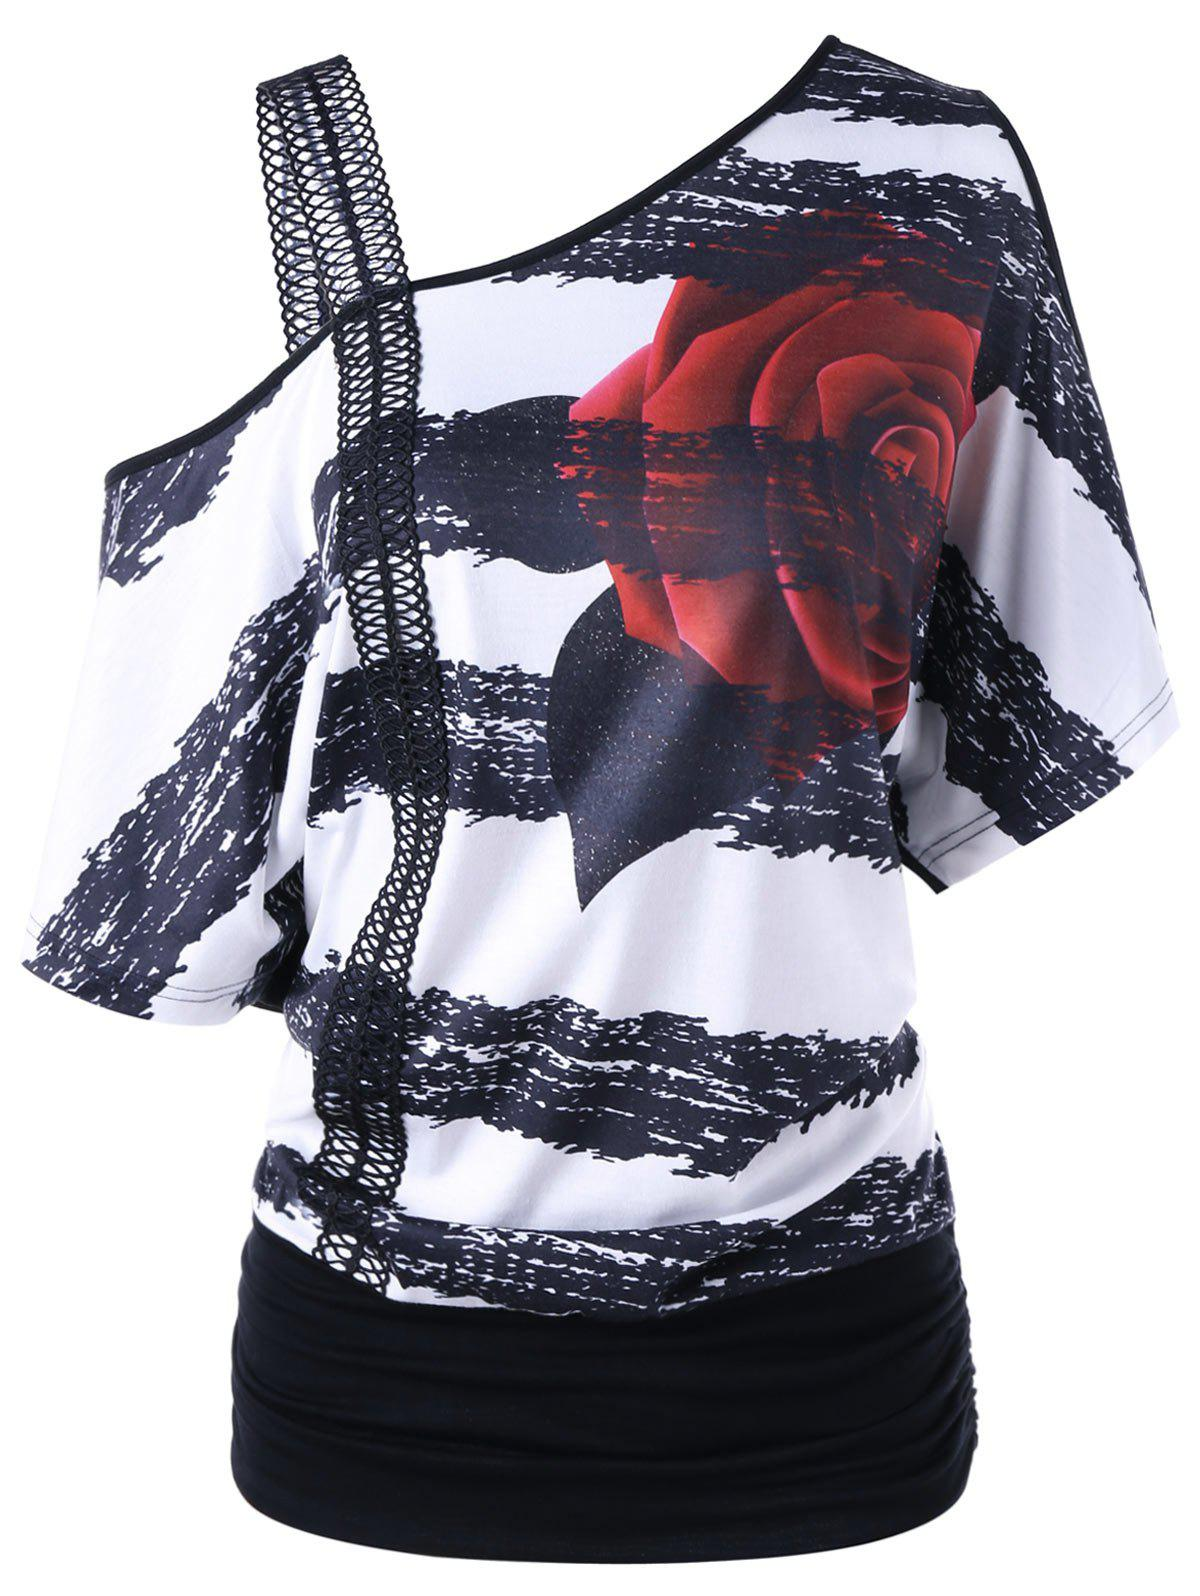 Skew Neck Floral Print TeeWOMEN<br><br>Size: XL; Color: BLACK WHITE; Material: Polyester,Spandex; Shirt Length: Long; Sleeve Length: Short; Collar: Skew Collar; Style: Fashion; Season: Fall,Spring,Summer; Pattern Type: Floral; Weight: 0.2560kg; Package Contents: 1 x T-shirt;